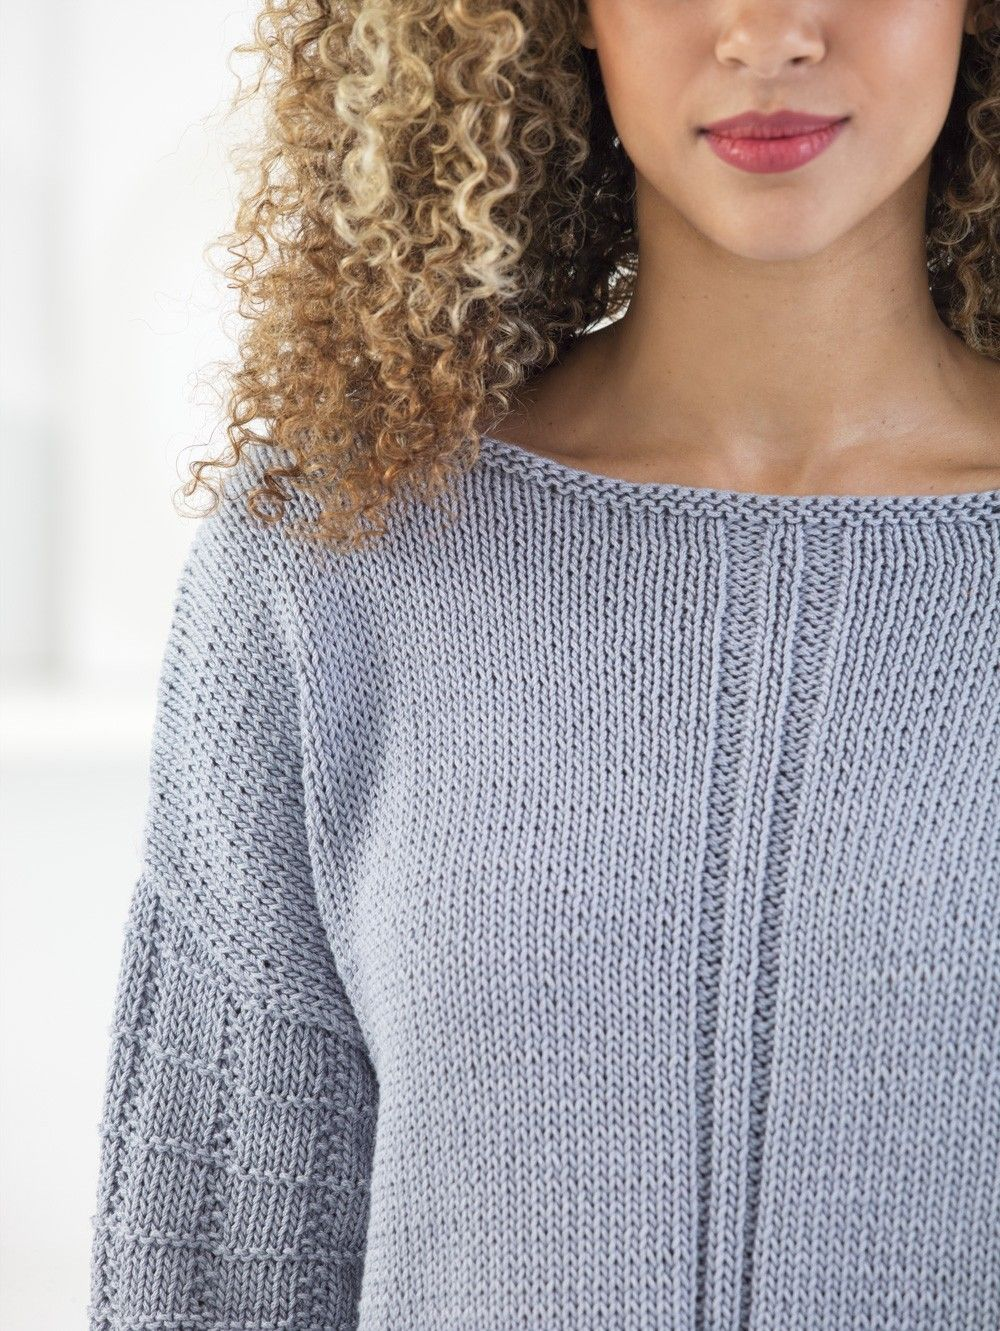 Gridded Pullover (Knit) | Knitting | Pinterest | Pullover, Knit ...